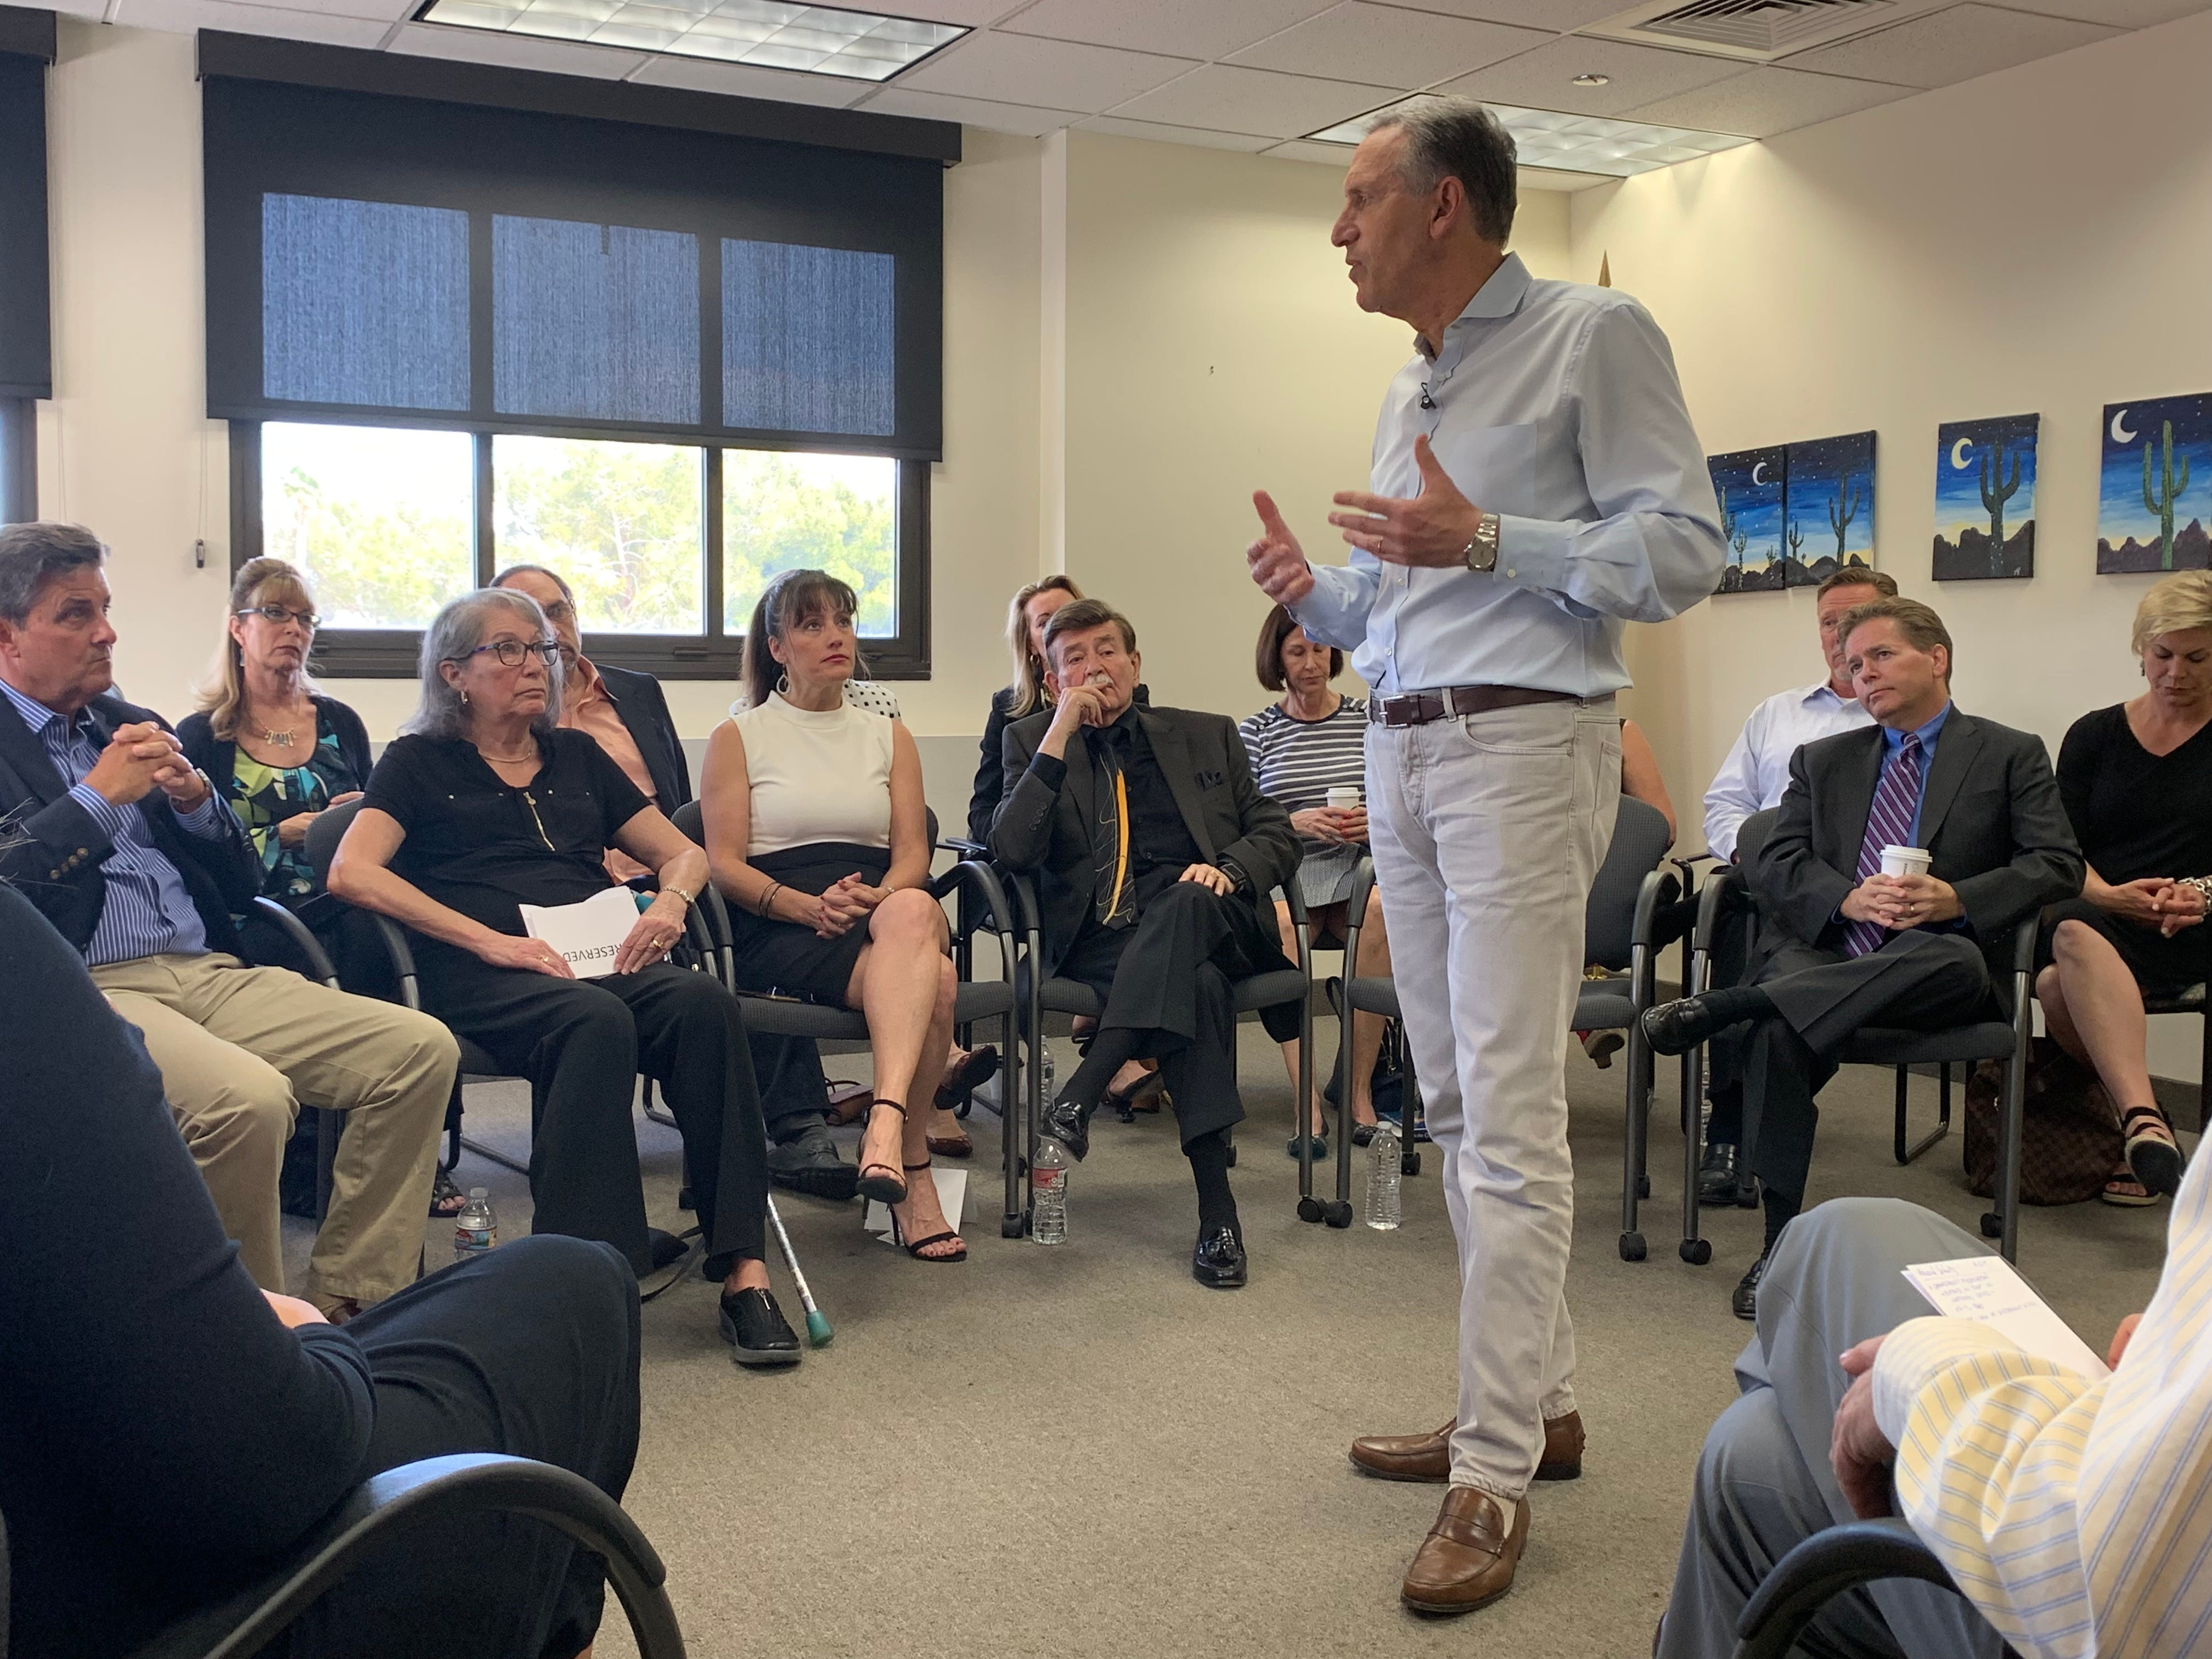 Longtime Starbucks CEO Howard Schultz is considering a bid for president, and he stopped in Arizona to hold town halls with residents.